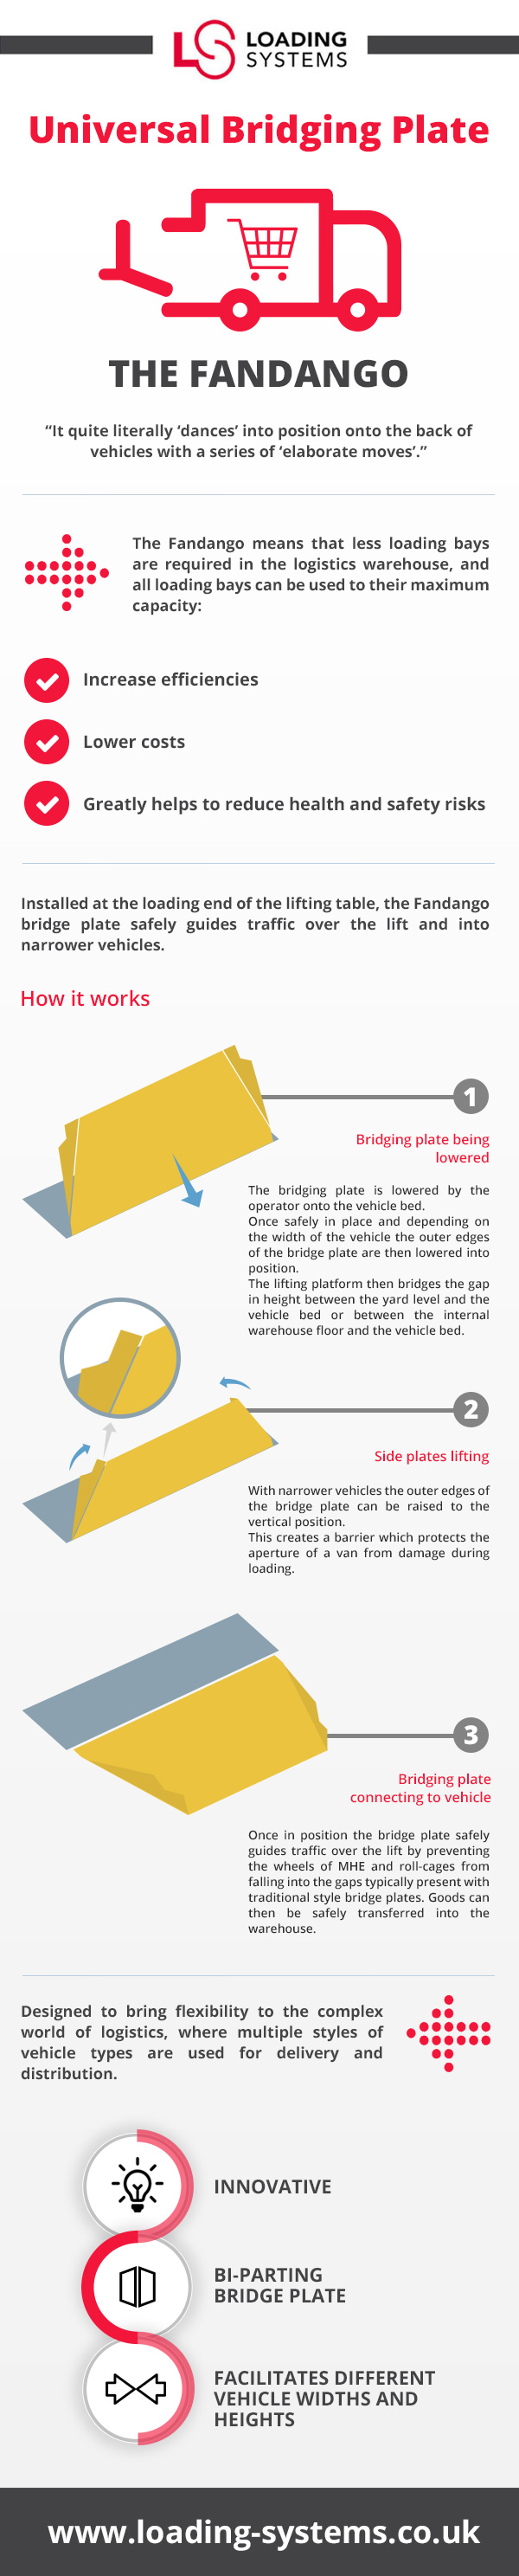 Easilift Loading Systems fandango Infographic